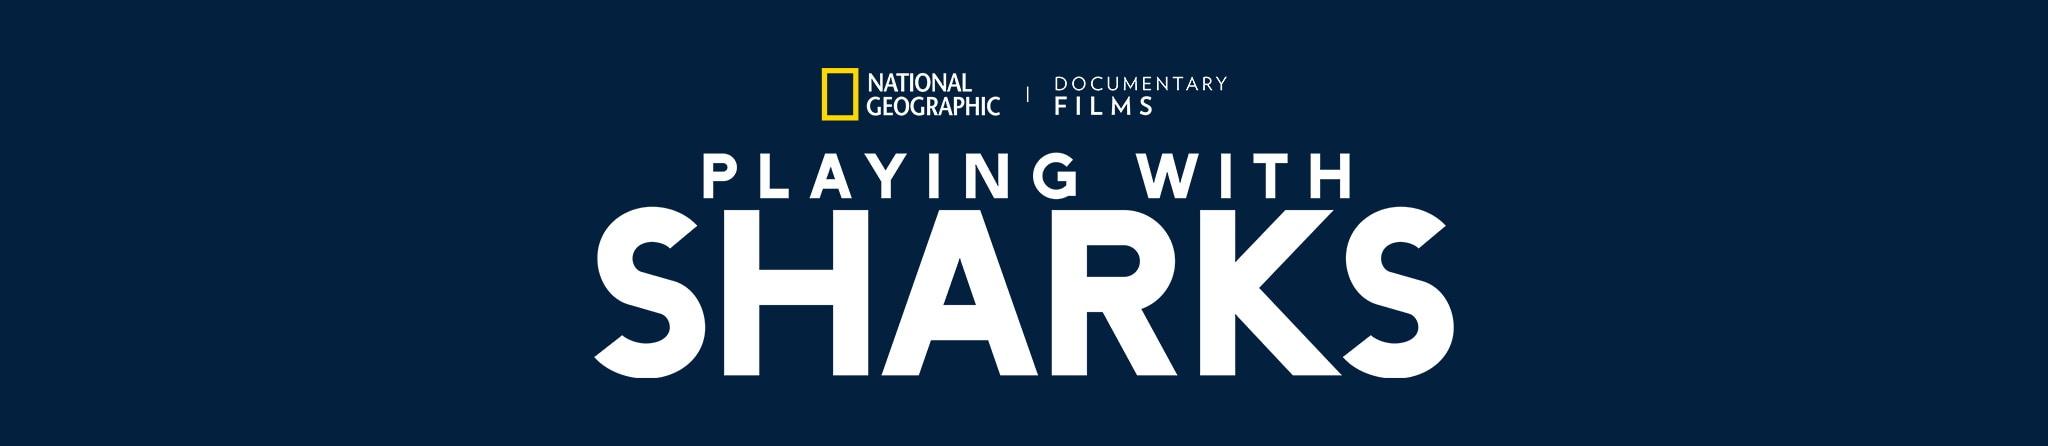 National Geographic Documentary Films | Playing With Sharks